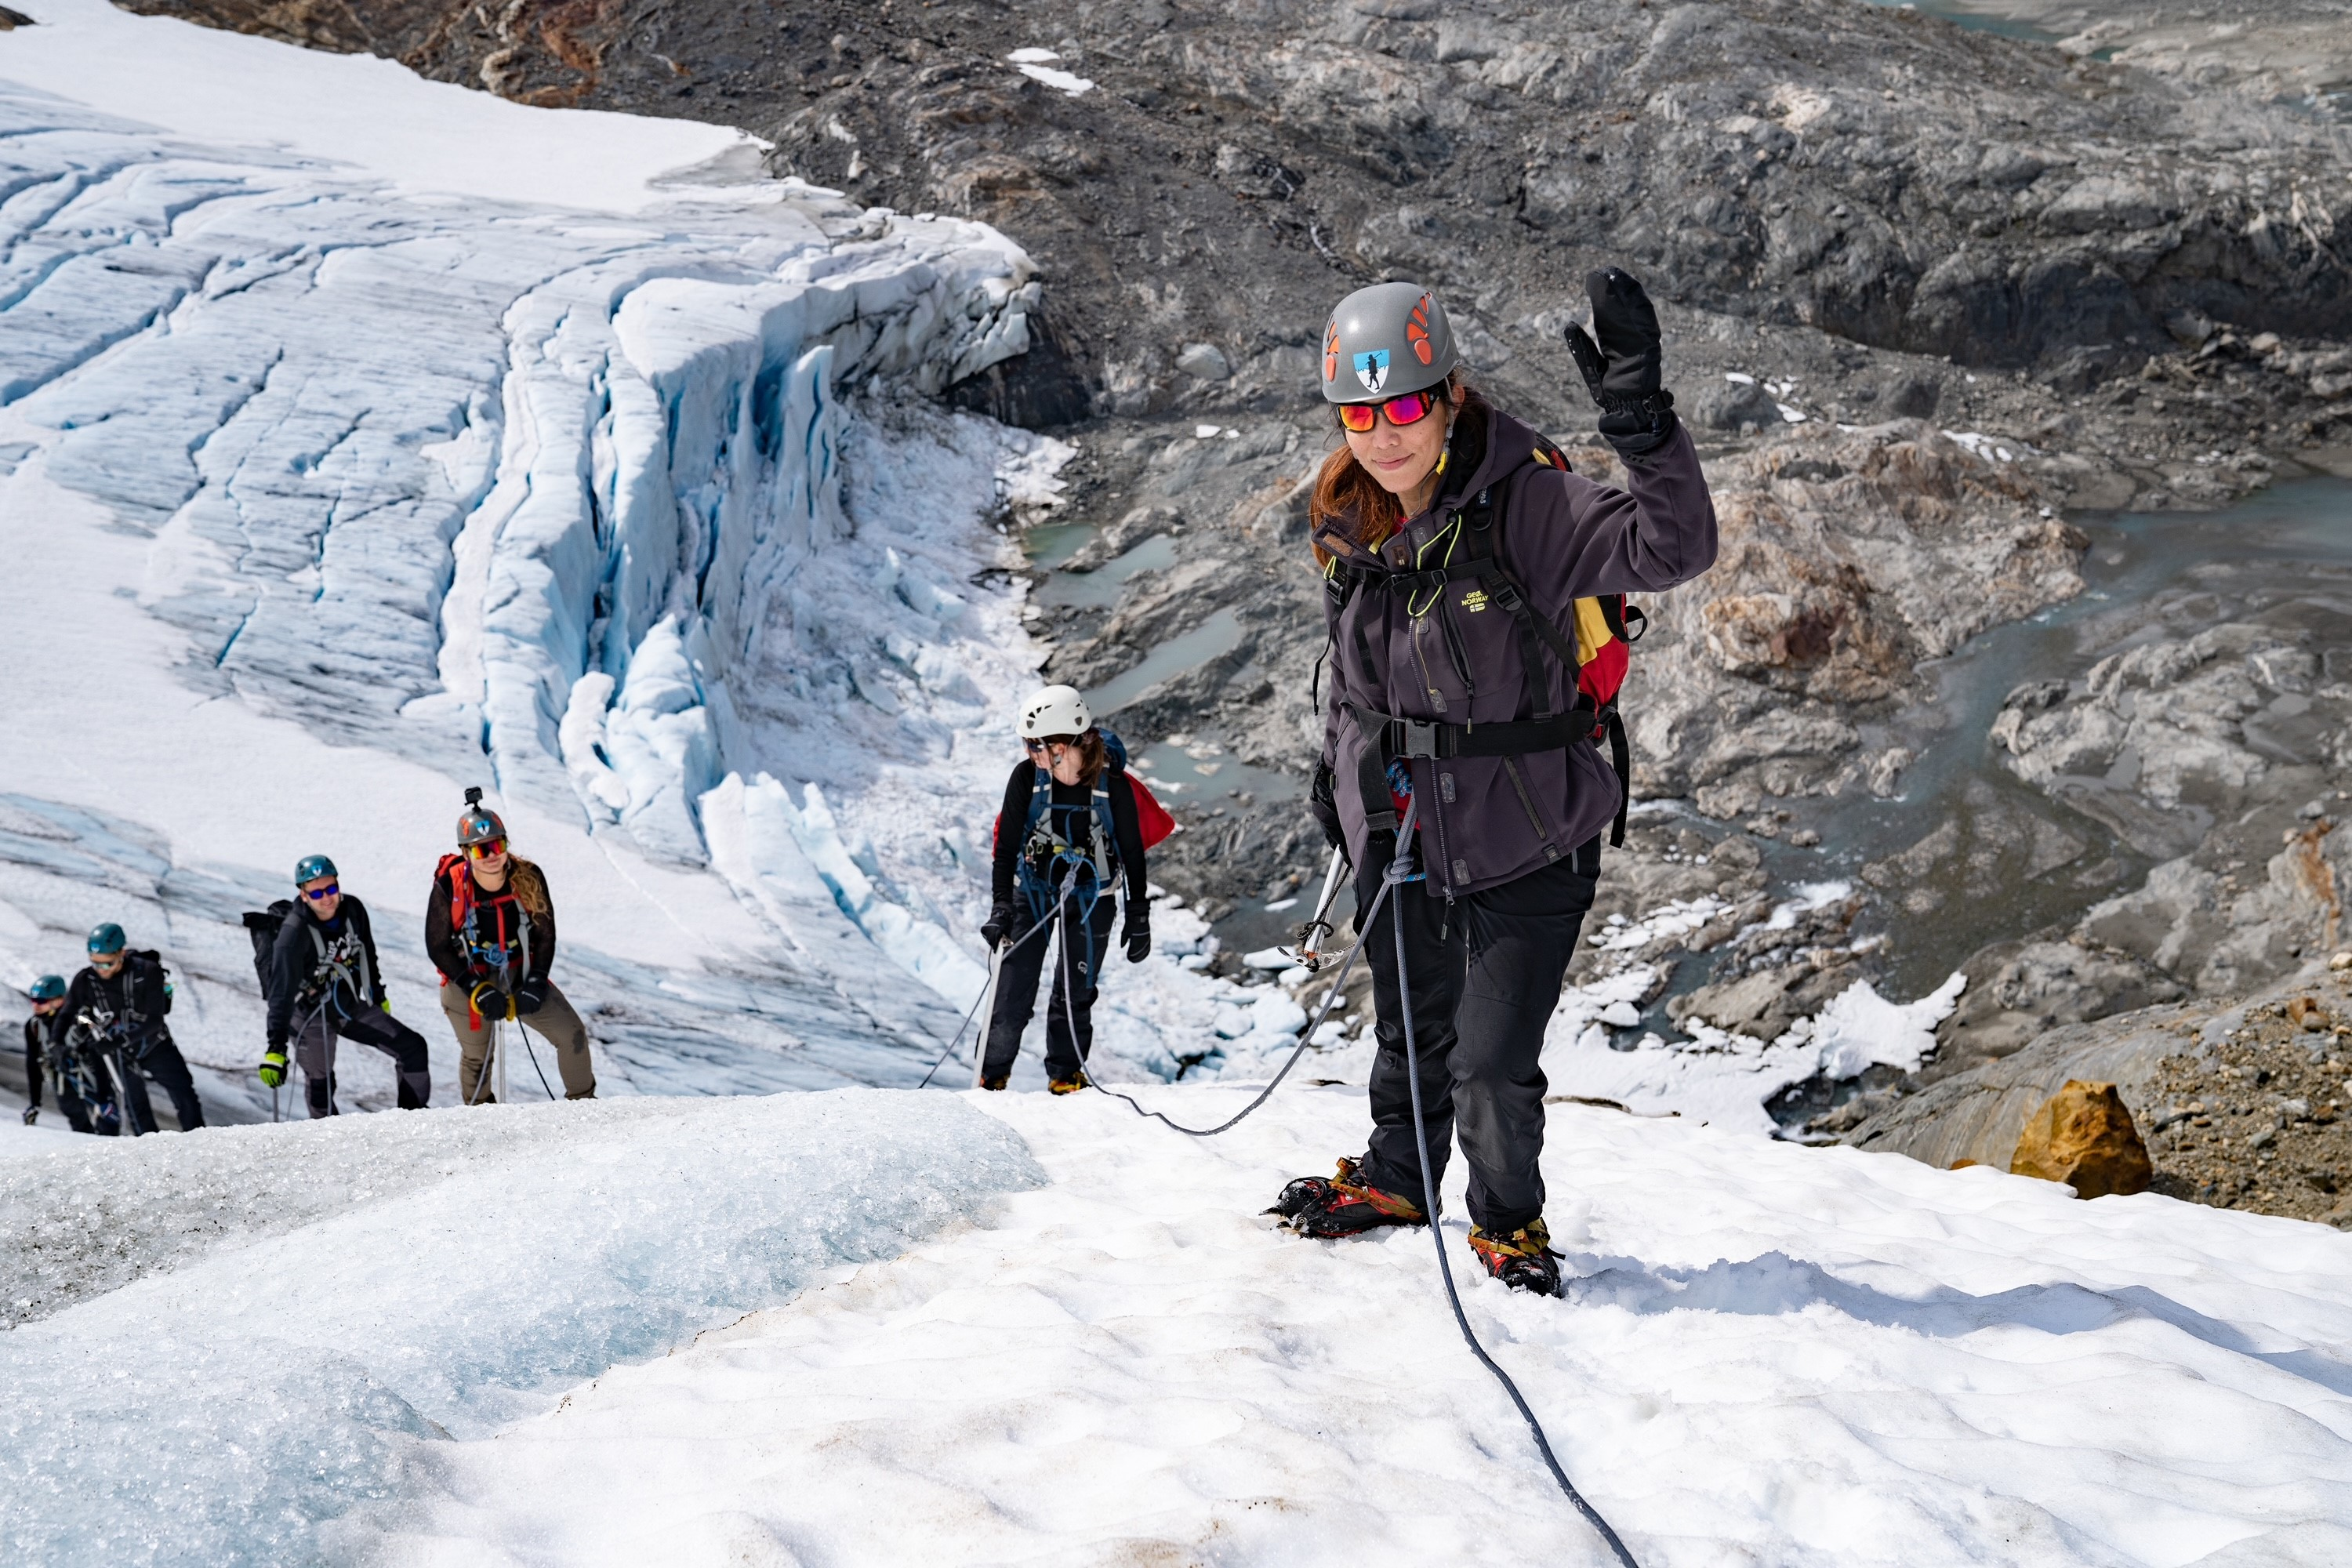 We have been very busy since mid June. The booking system and all glacier guides have been under high pressure! We still are full of energy and ready to let you explore the best fjord experience in Norway! See you!